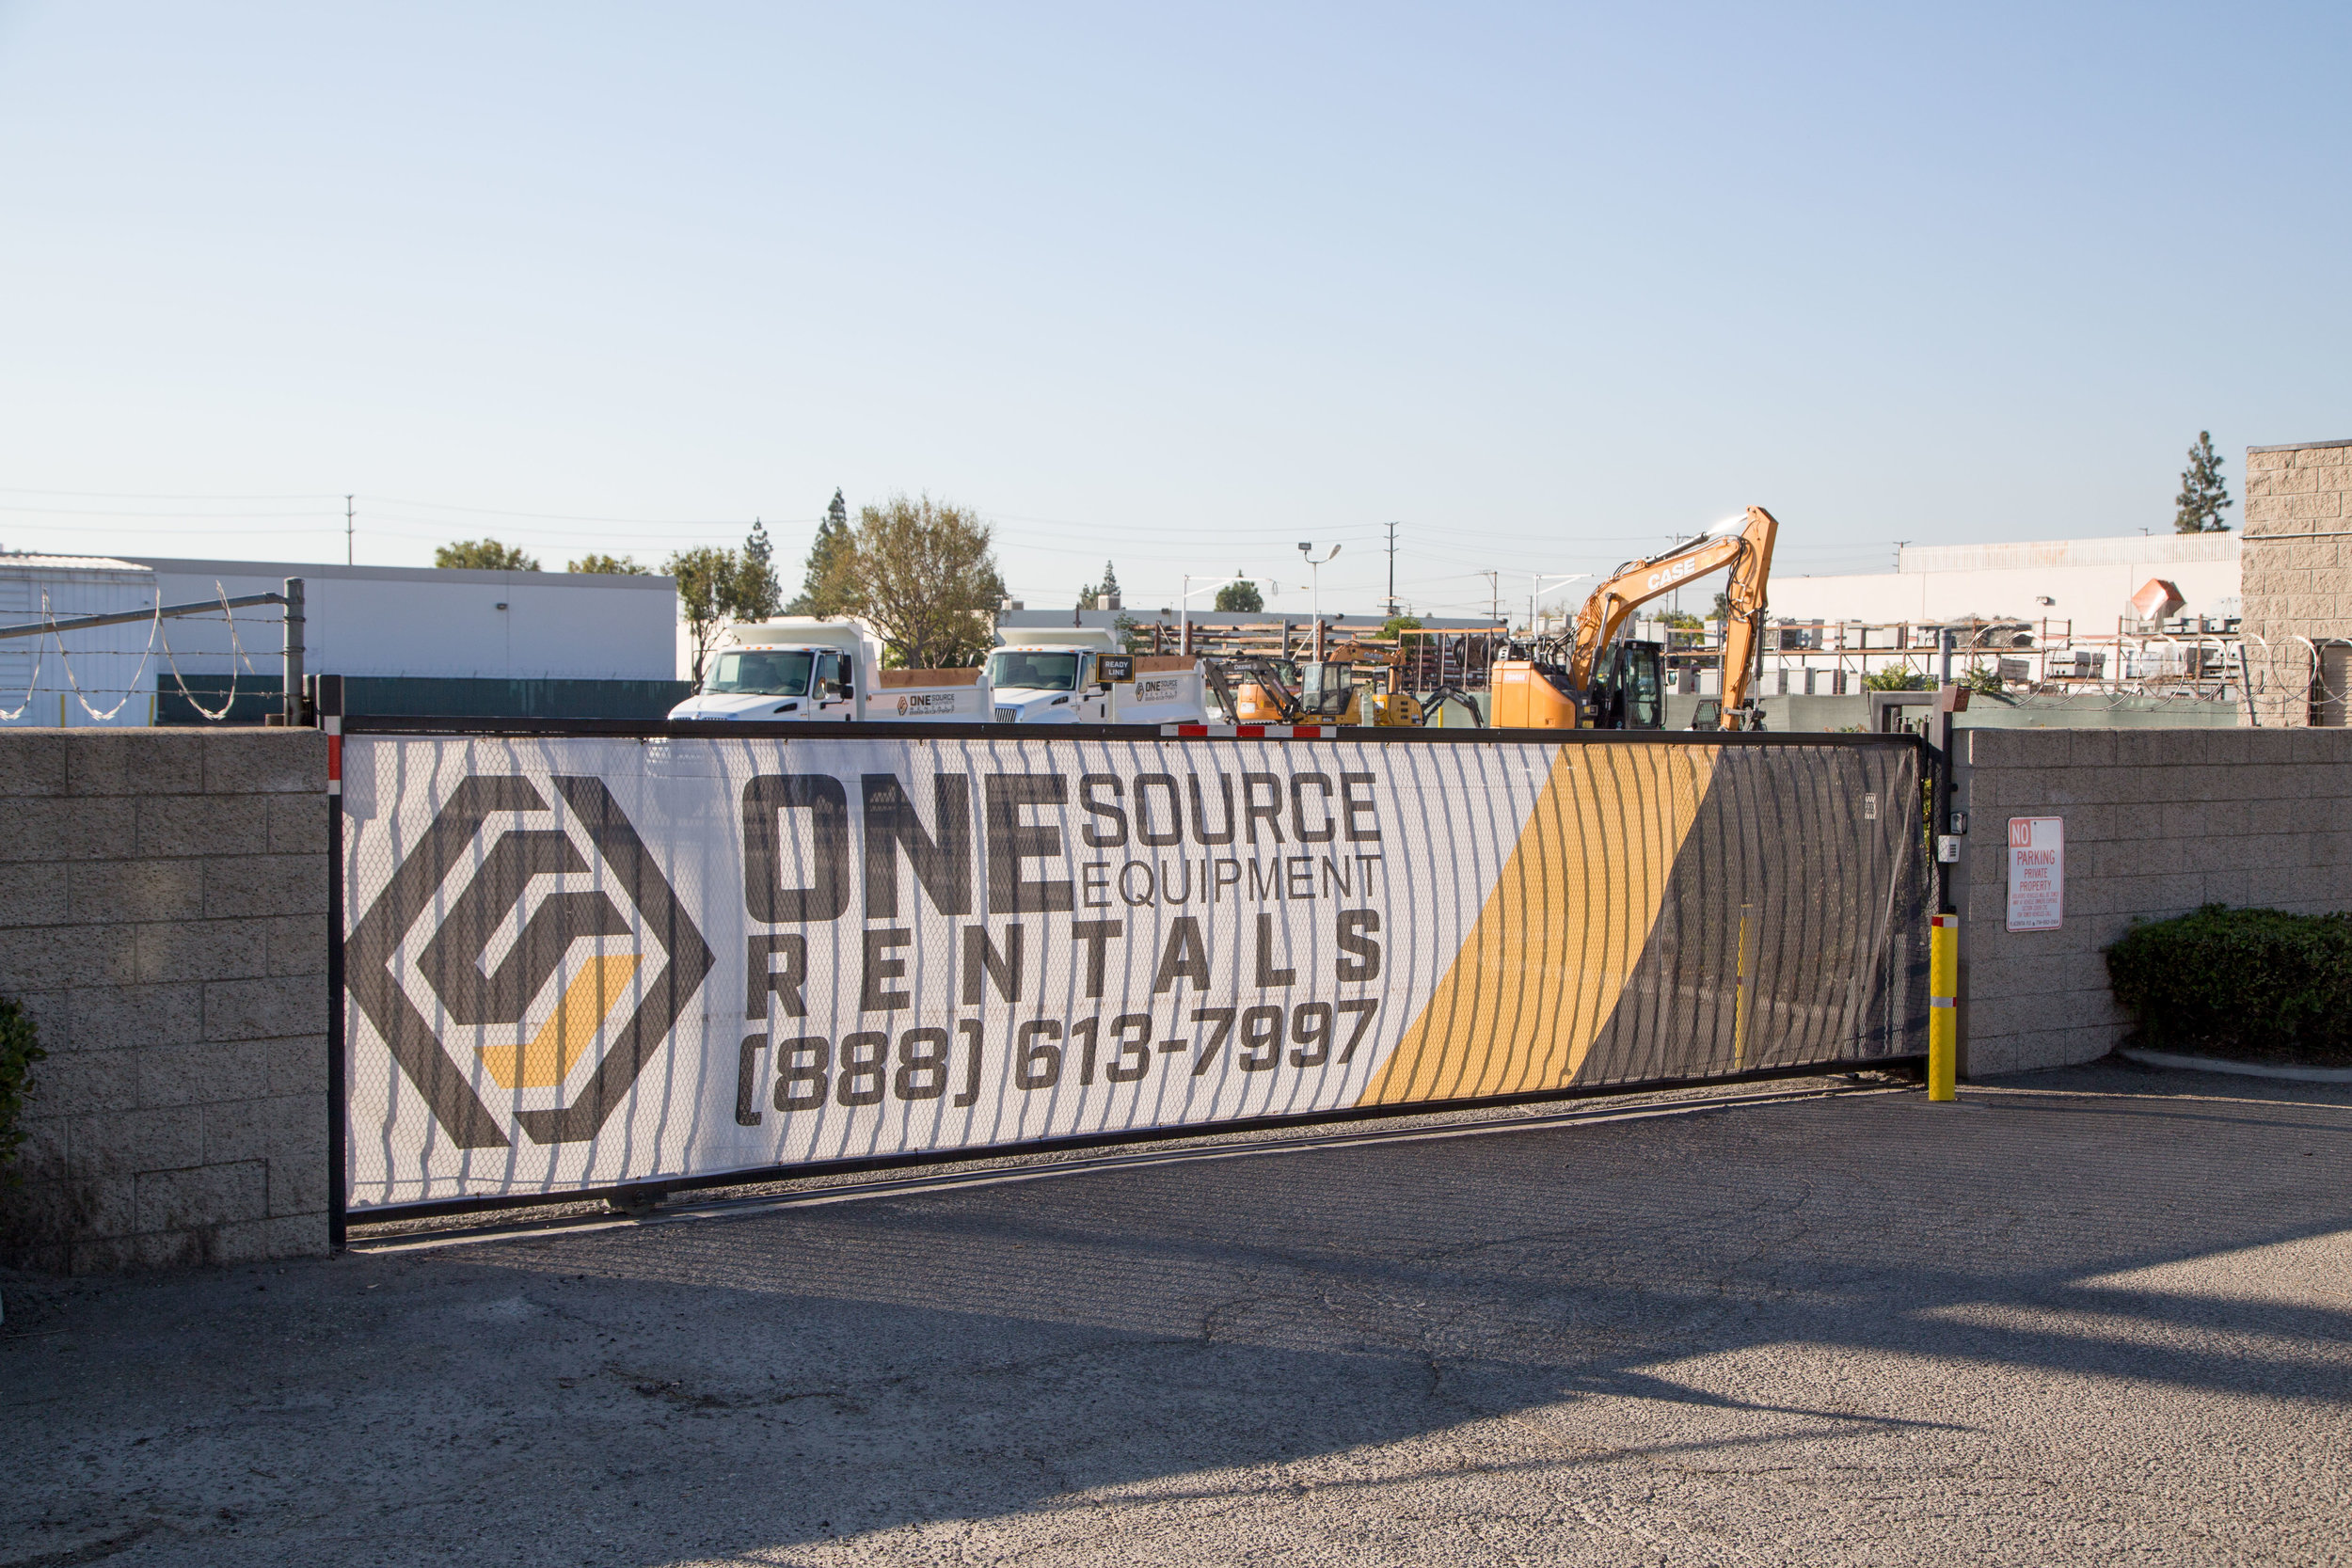 ABOUT OUR COMPANY - ONE SOURCE EQUIPMENT RENTALS TAKES PRIDE IN OUR MISSION TO PROVIDE THE BEST CUSTOMER SERVICE EXPERIENCE WITHIN THE INDUSTRY. WE OFFER AN IMPRESSIVE RANGE OF SPECIALTY EQUIPMENT TO COMMERCIAL AND INDEPENDENT CONTRACTORS.